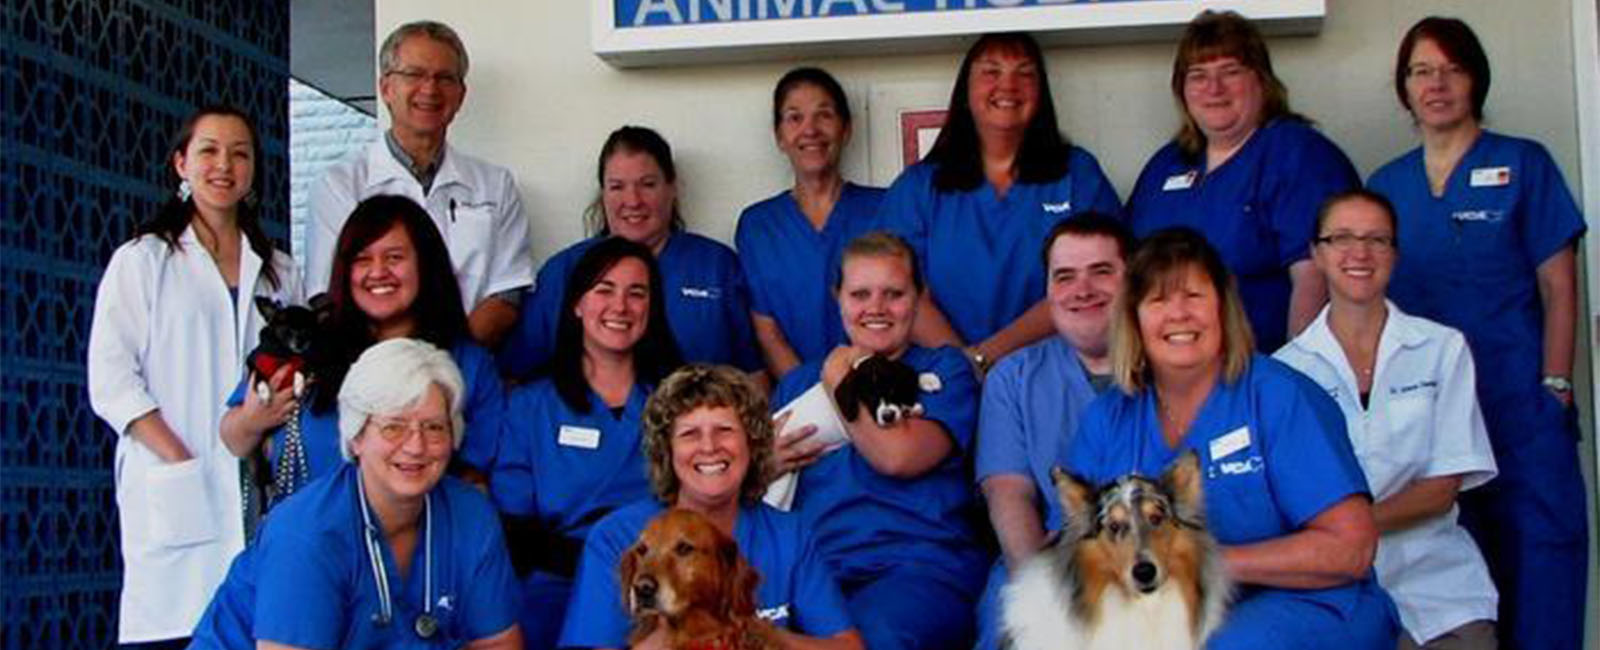 Homepage Team Picture of VCA 12-Mile Animal Hospital